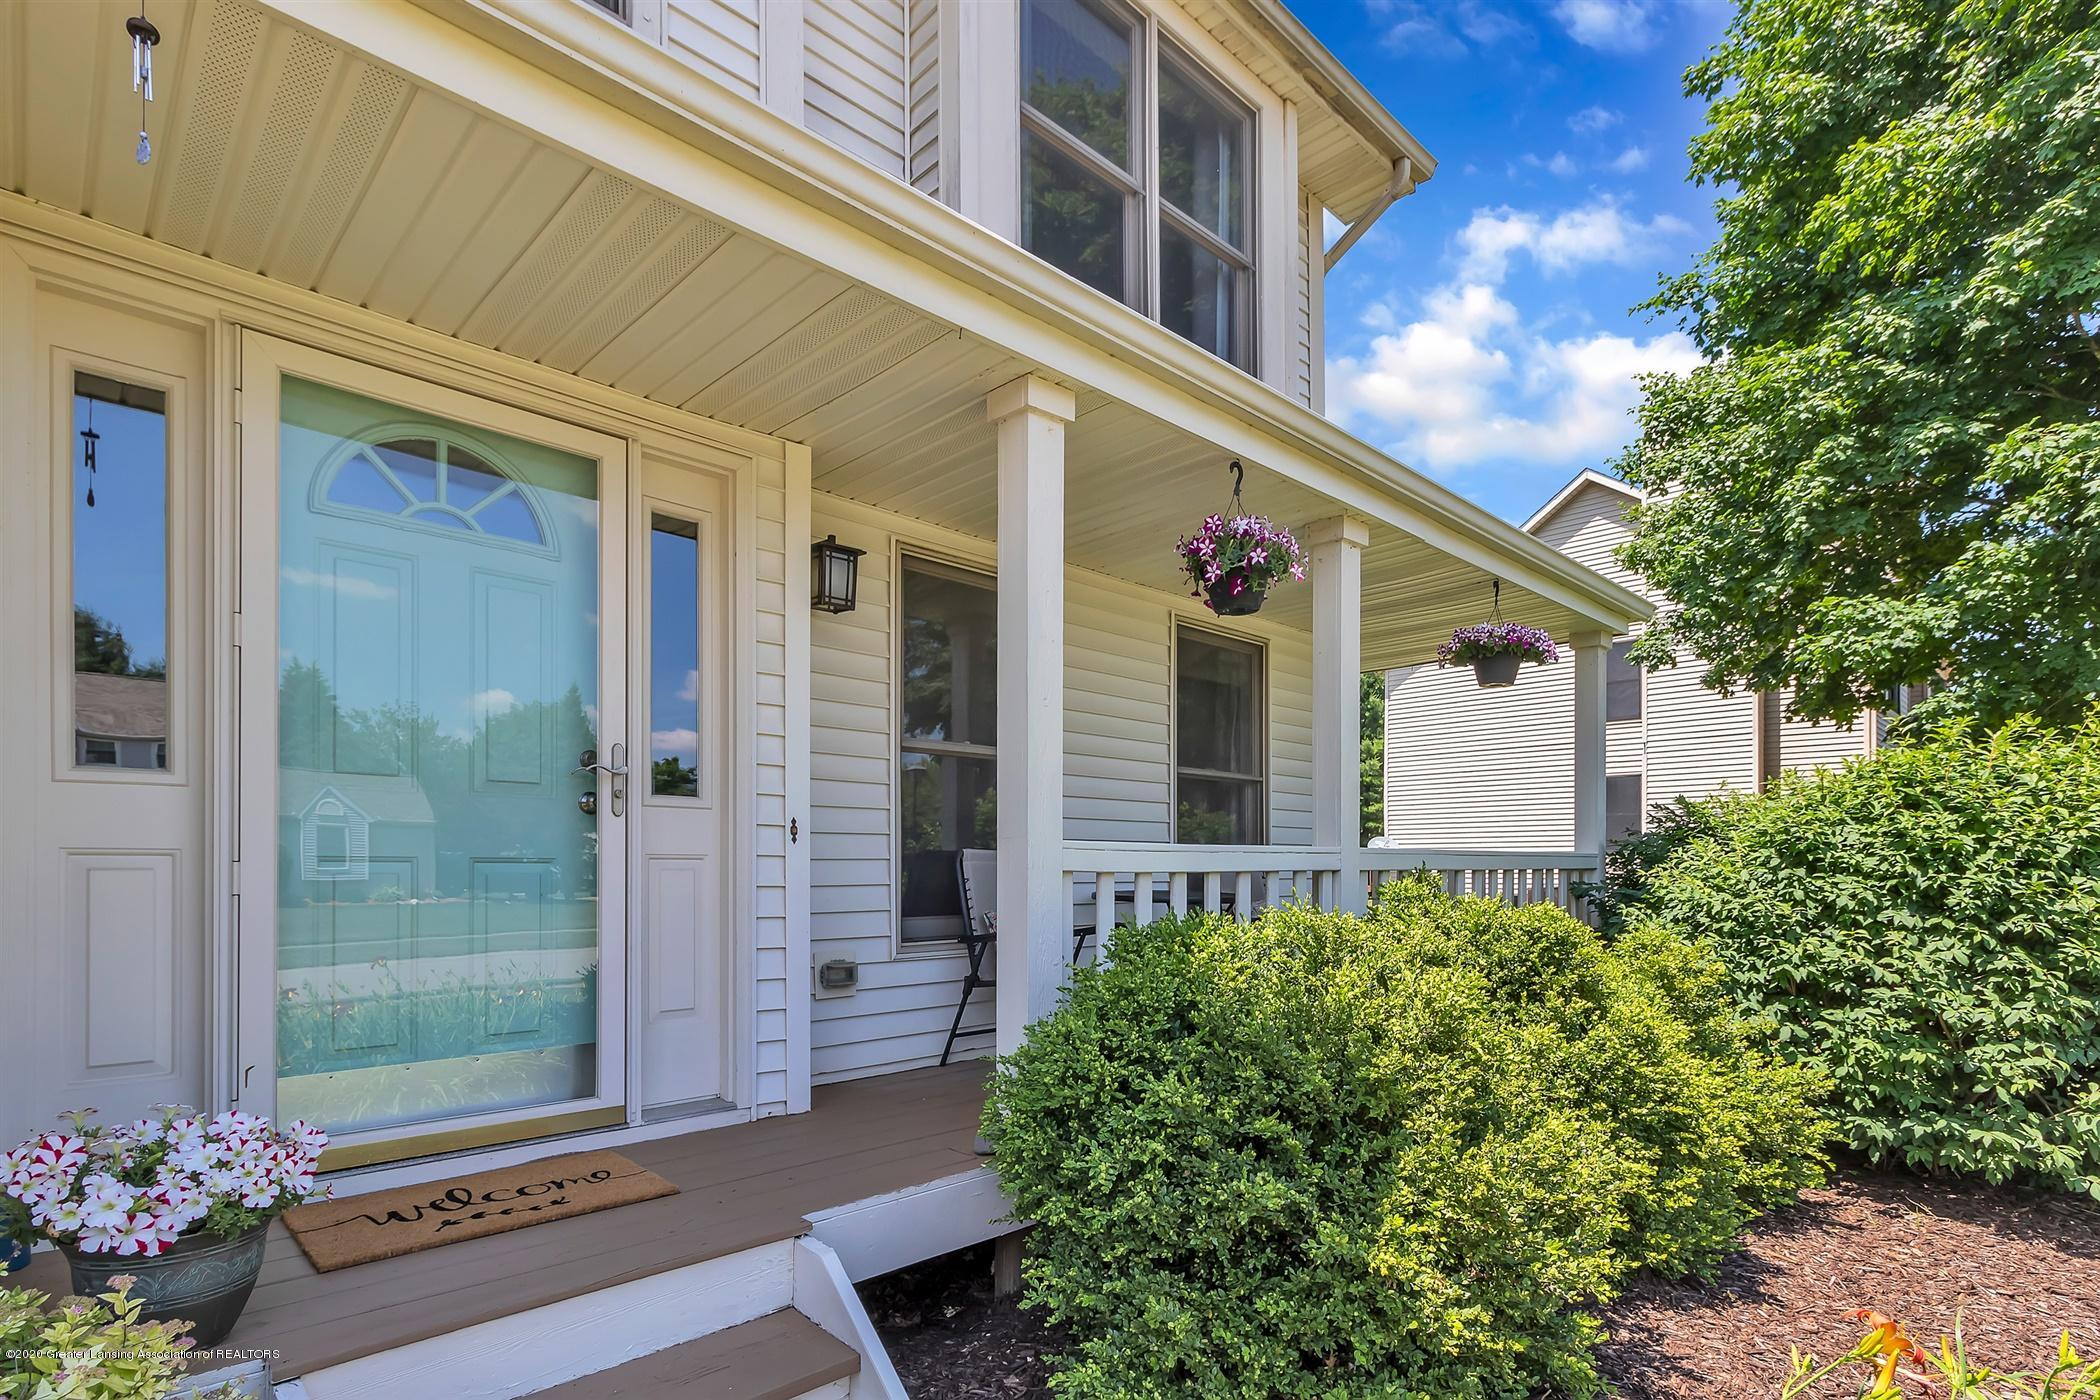 2945 Whistlewood Way - 05-2945Whistlewood-WindowStill-Real - 5